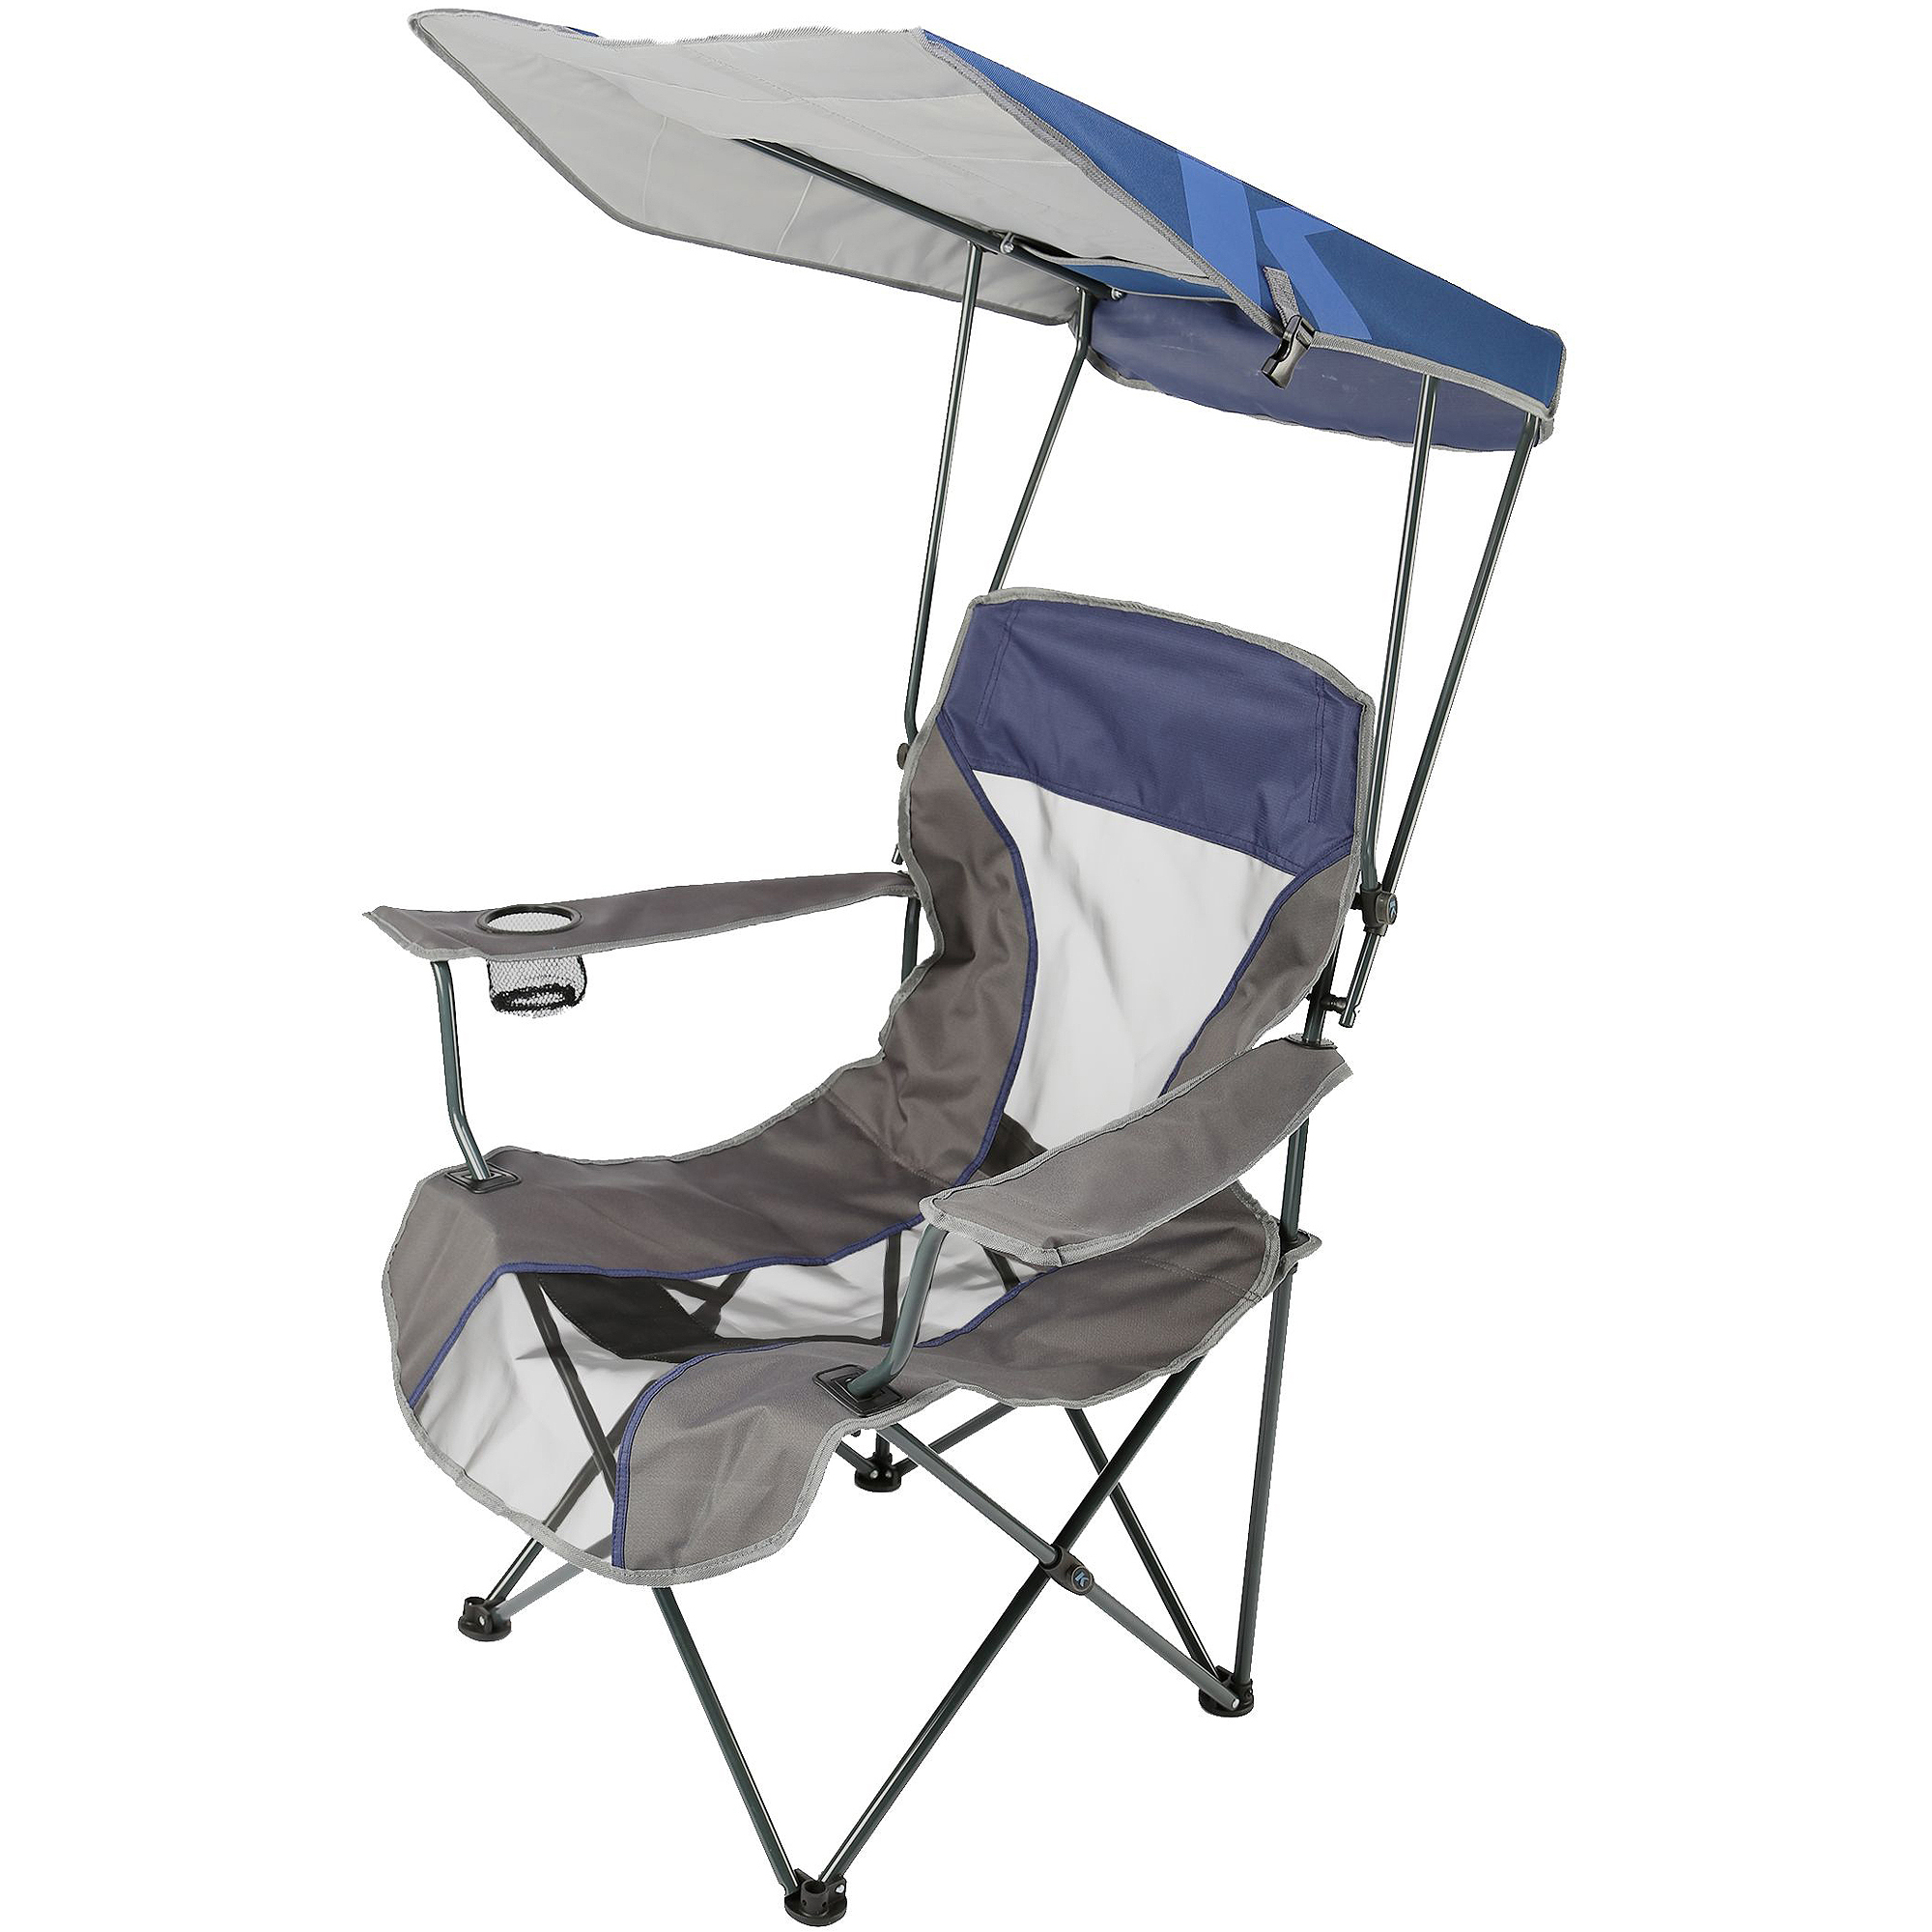 Fold Up Chair With Canopy Lawn Chair With Canopy And See The Folding Reclining Lawn